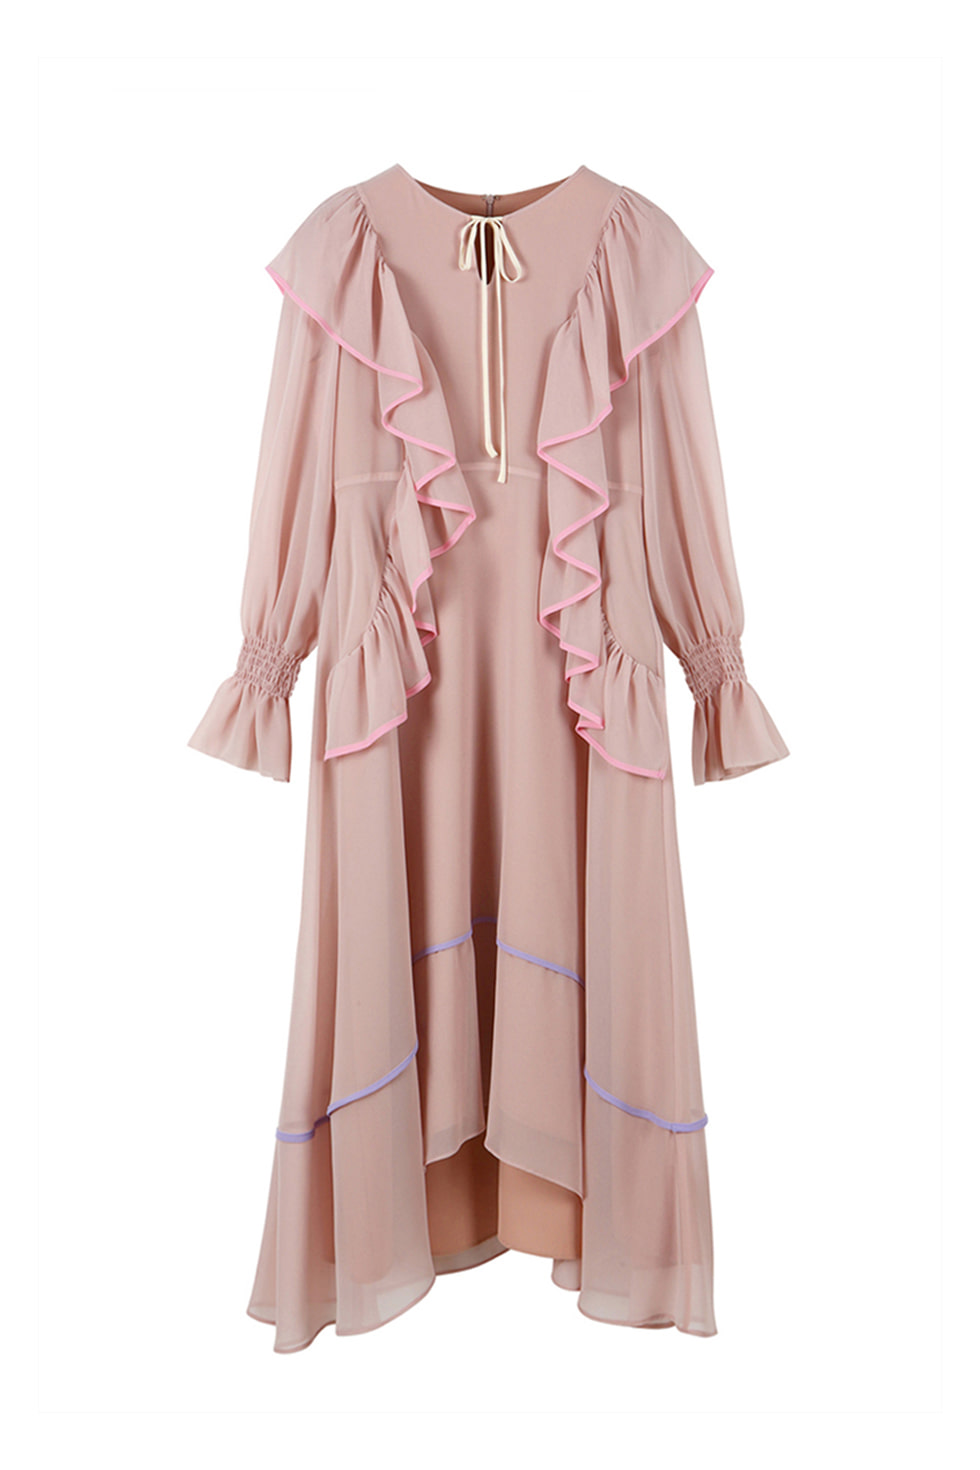 BINDING RUFFLE DRESS - PINK